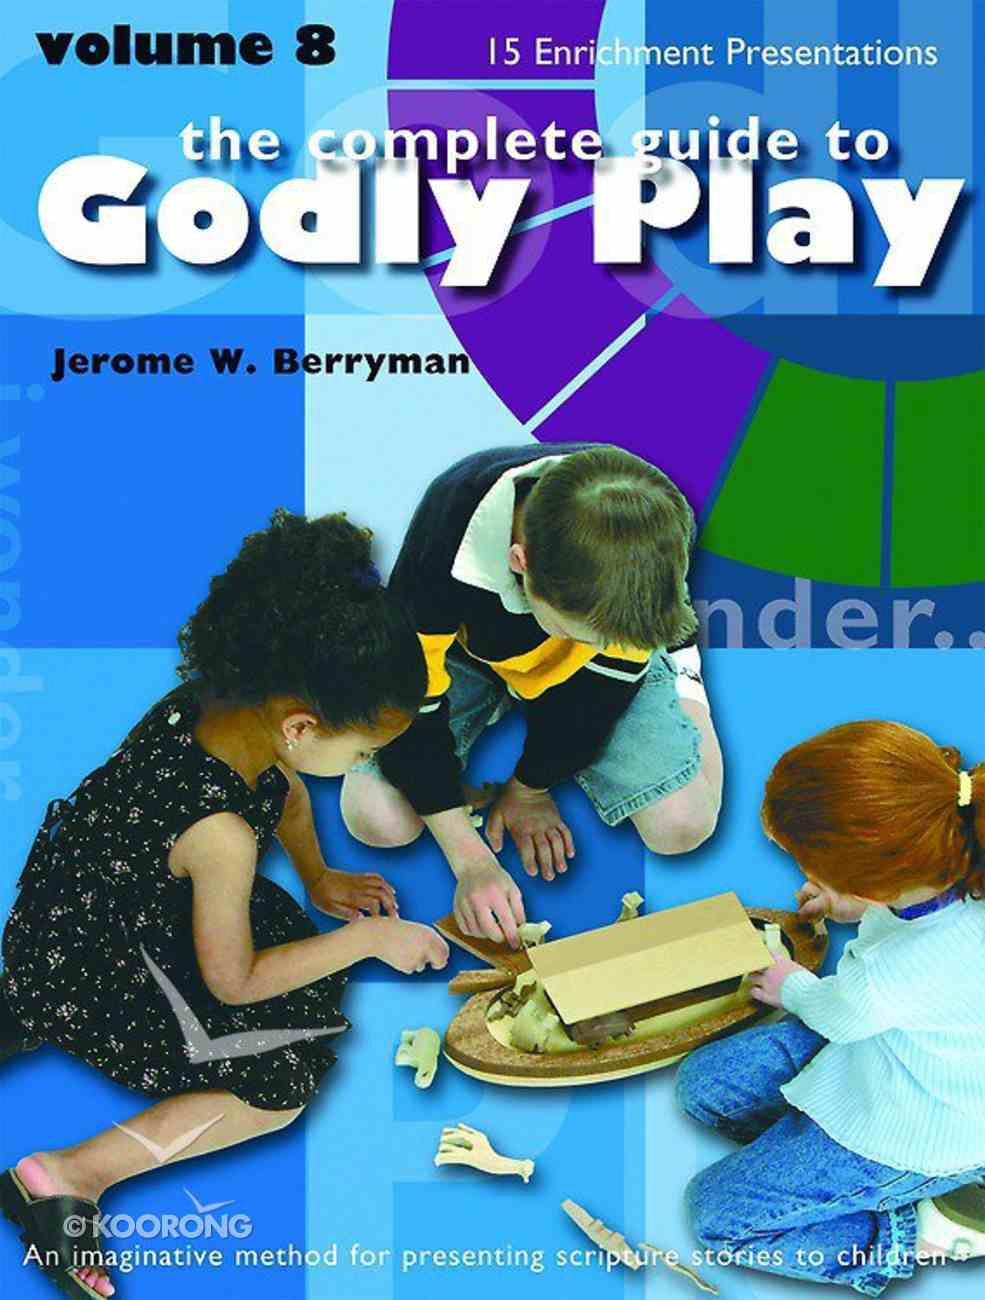 Complete Guide to Godly Play, the - Volume 8 - 15 New Core and Enrichment Sessions (#08 in The Complete Guide To Godly Play Series) Paperback